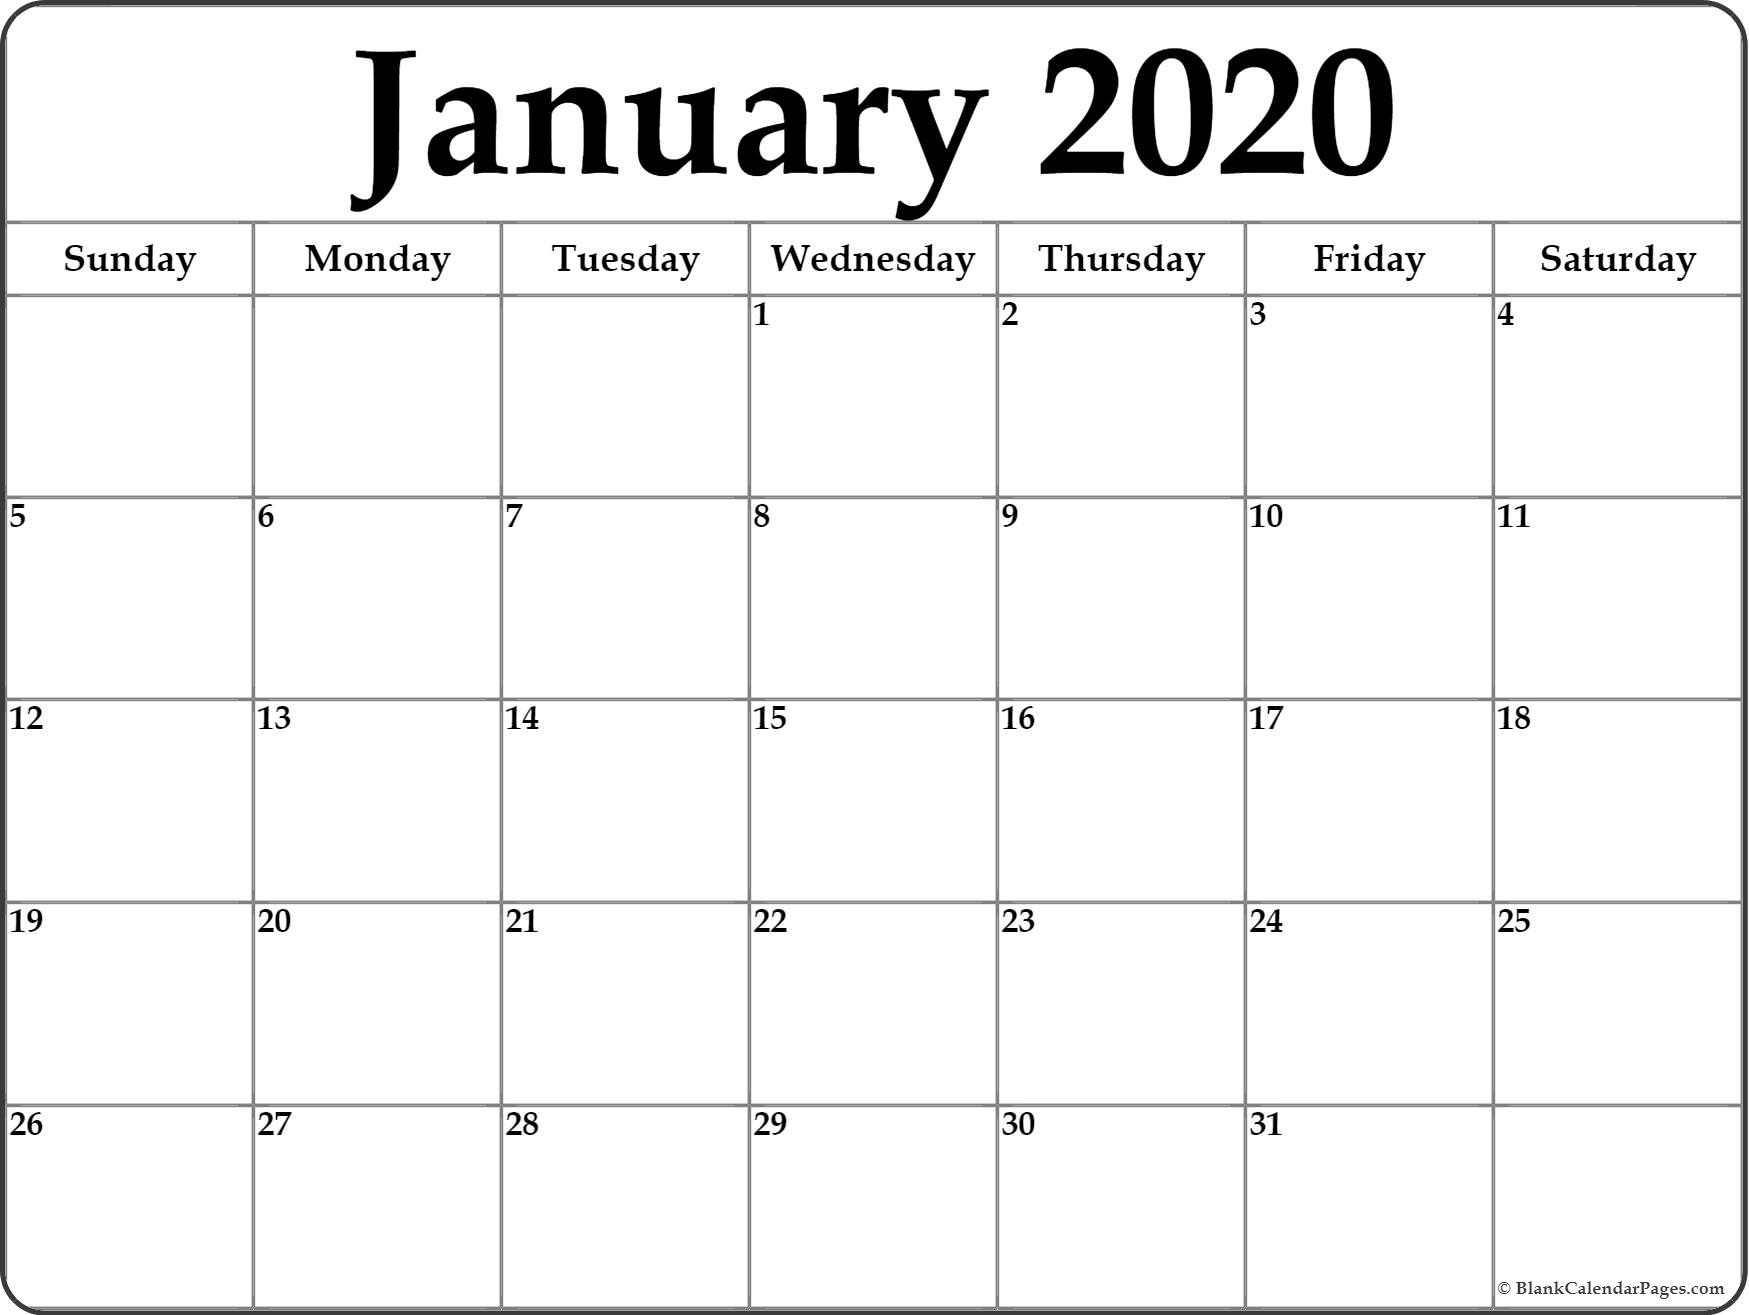 January 2020 Calendar | Free Printable Monthly Calendars-Blank Calendar 2020 Printable Monthly